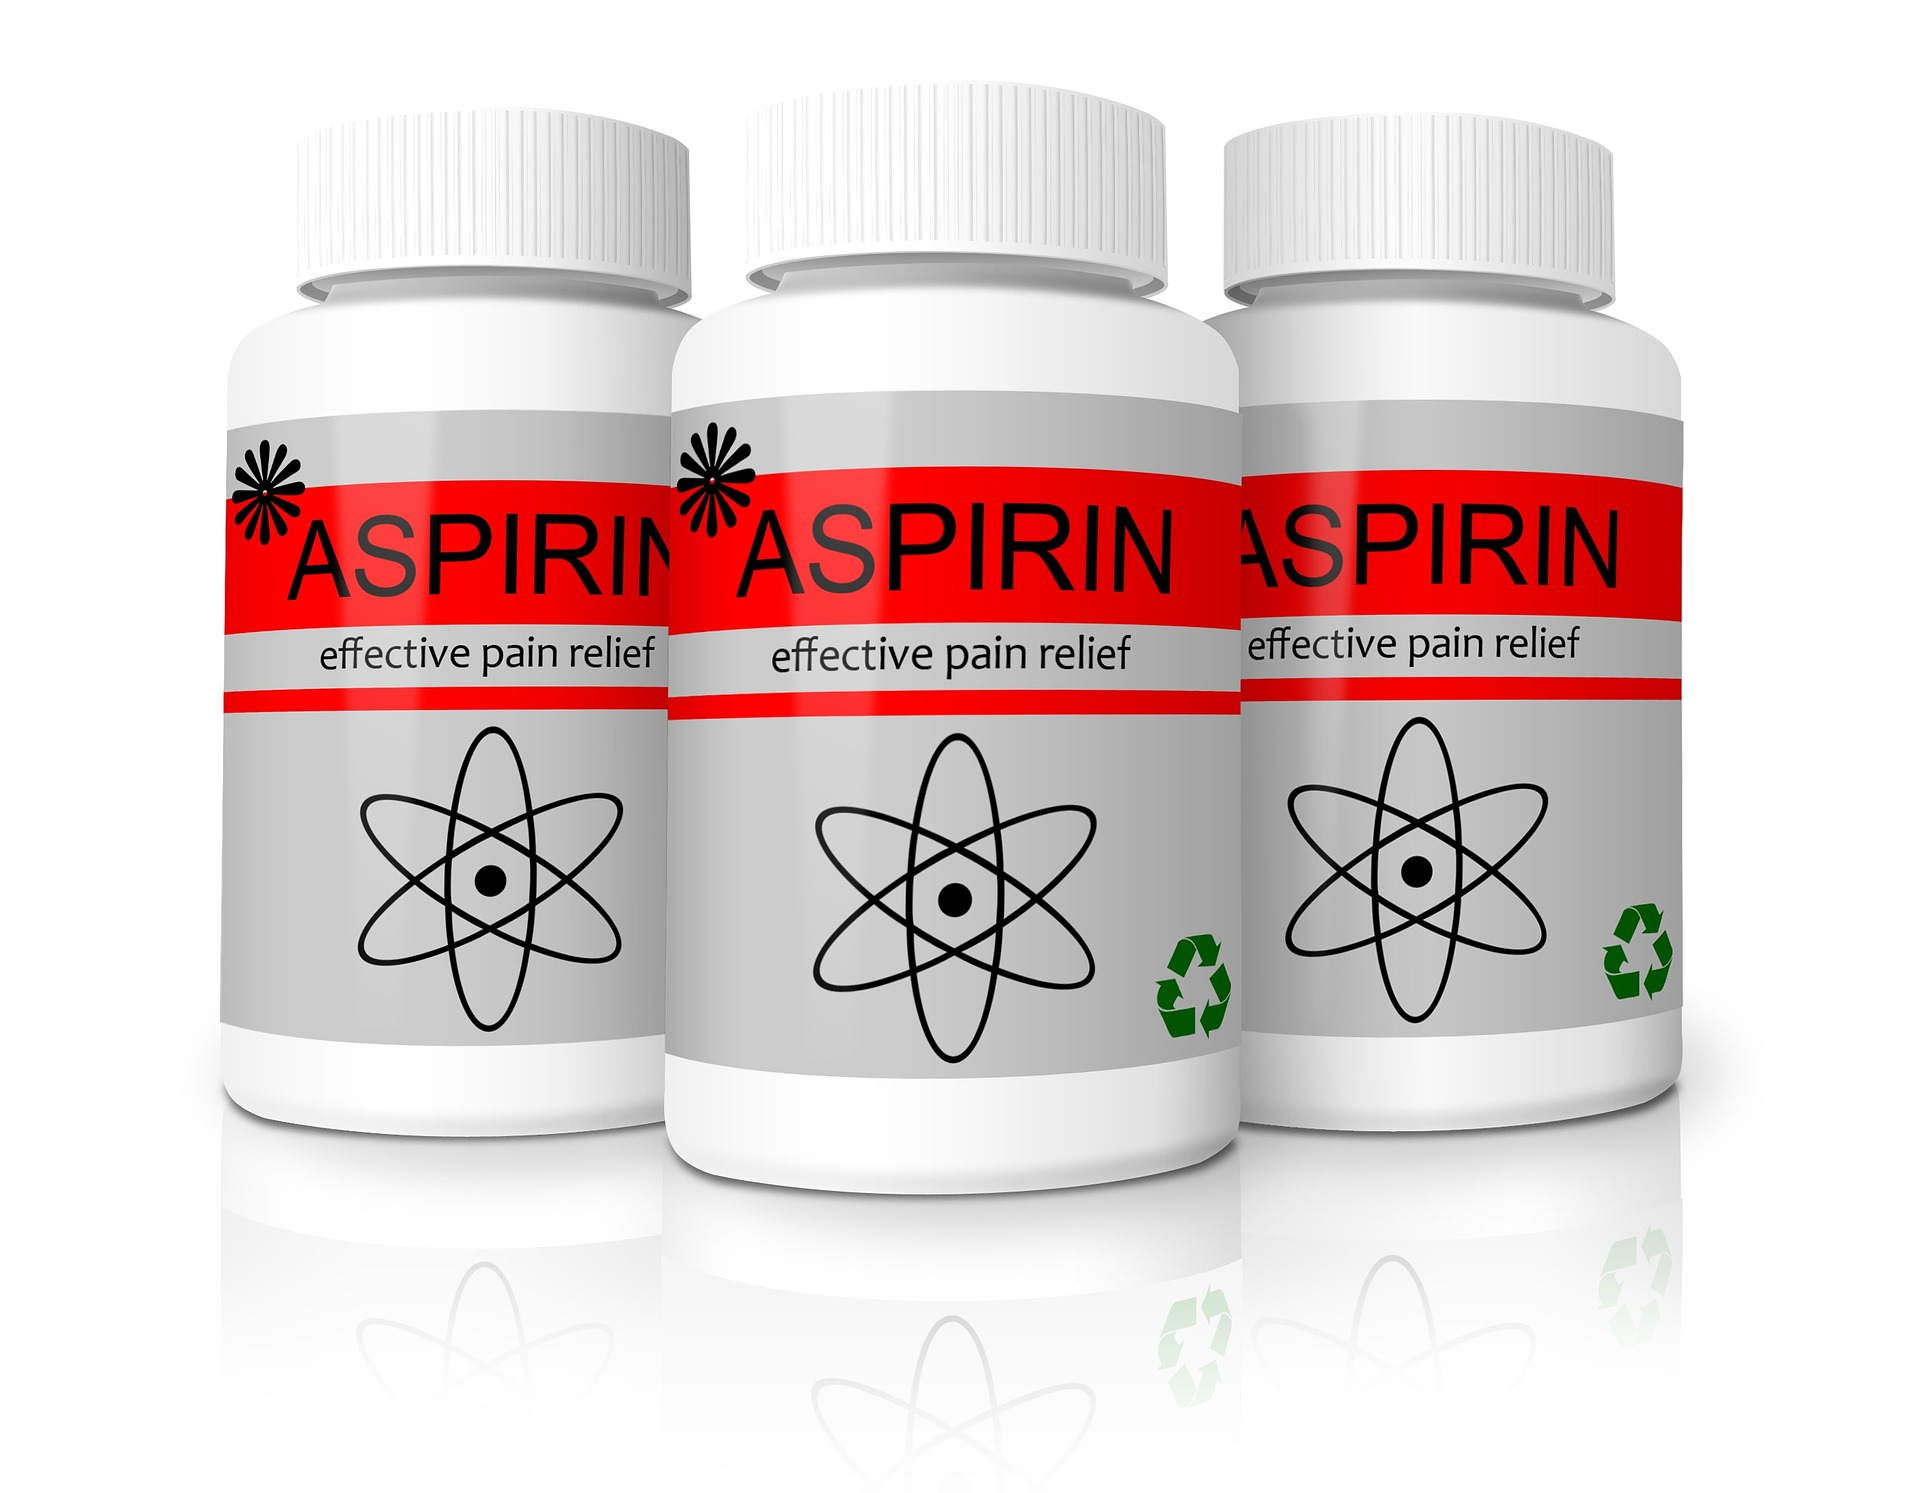 Does Taking Aspirin Daily Prevent Heart Attacks? Think Again